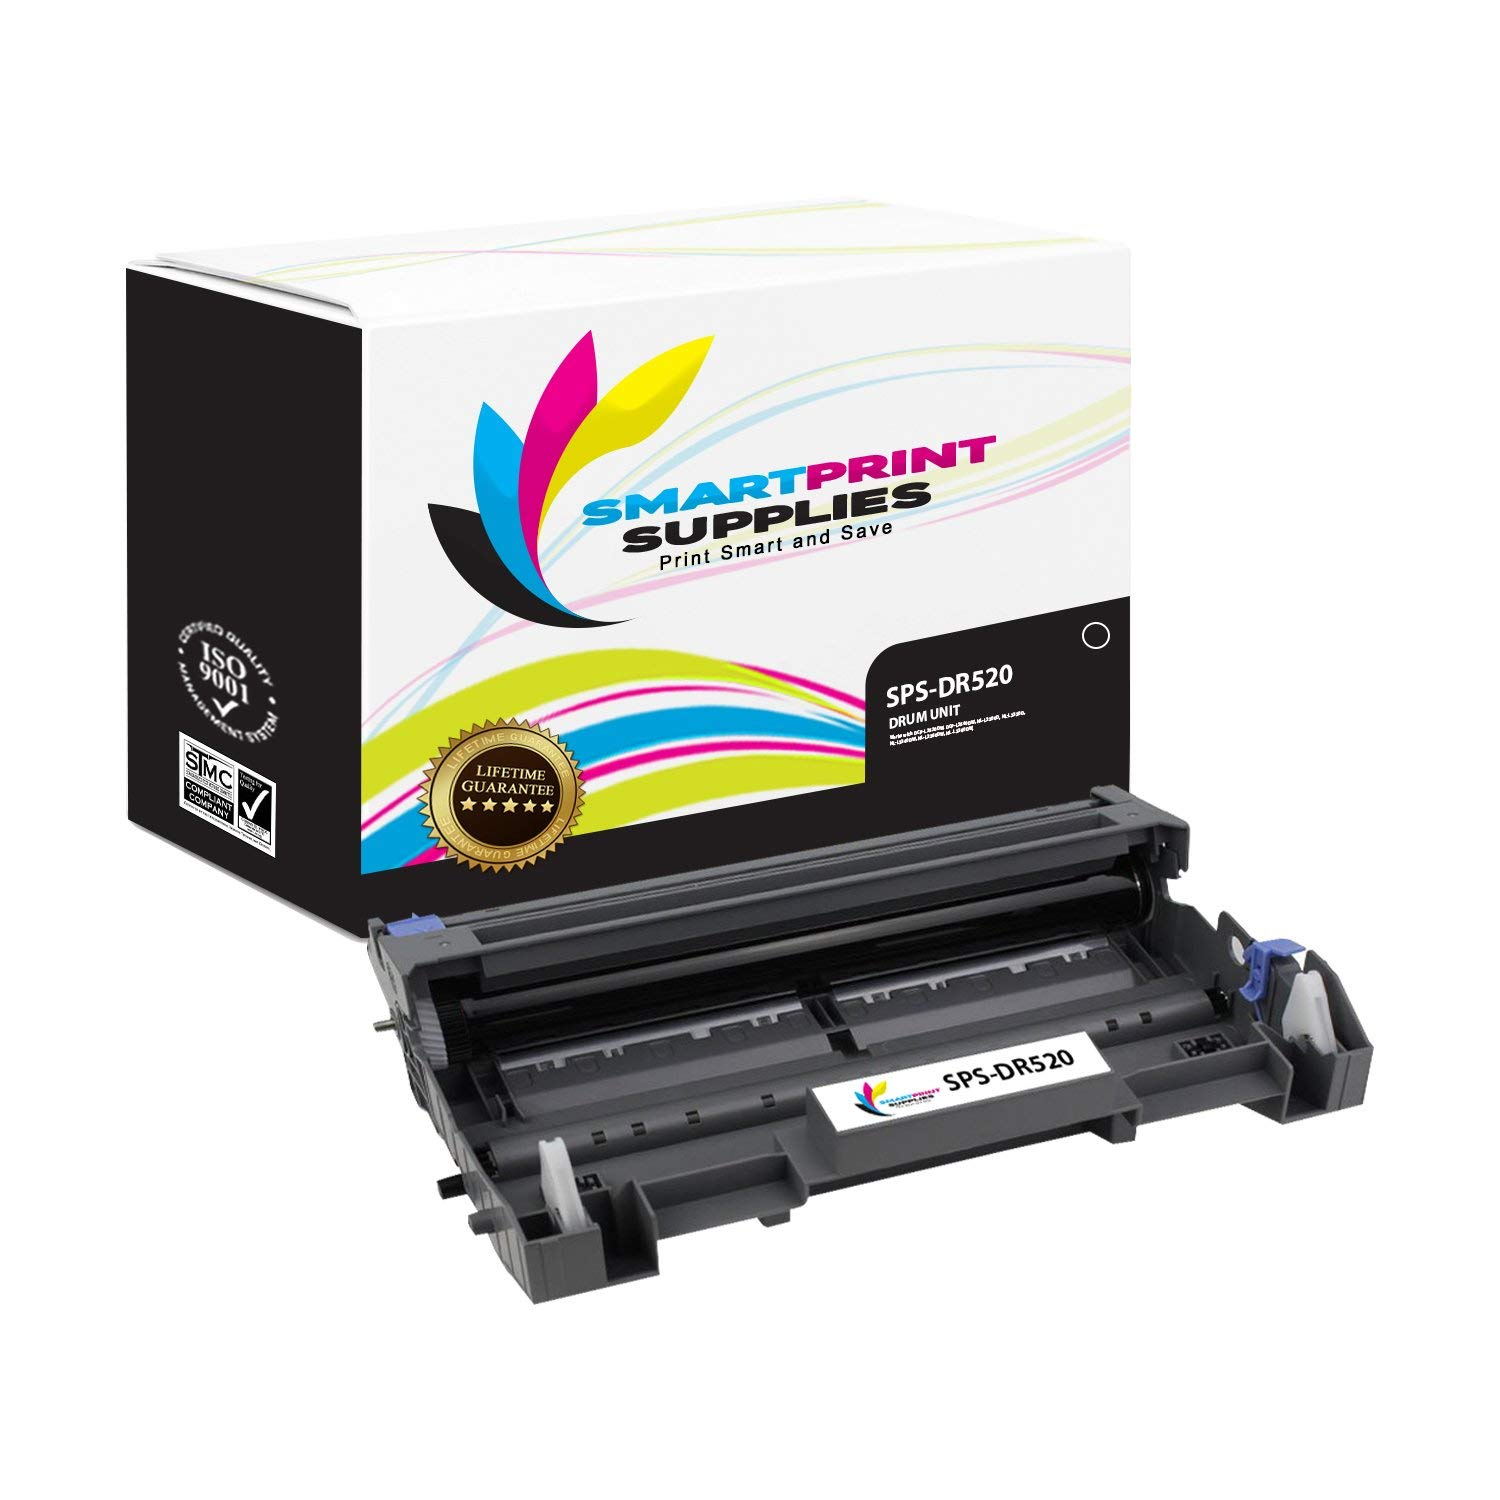 Smart Print Supplies DR520 DR-520 Compatible Drum Unit Replacement for Brother HL-5240 5250DN 5250DNT 5280DW, MFC-8460N 8660DN 8860DN 8870DW, DCP-8060 8065DN Laser Printers (25,000 Pages)